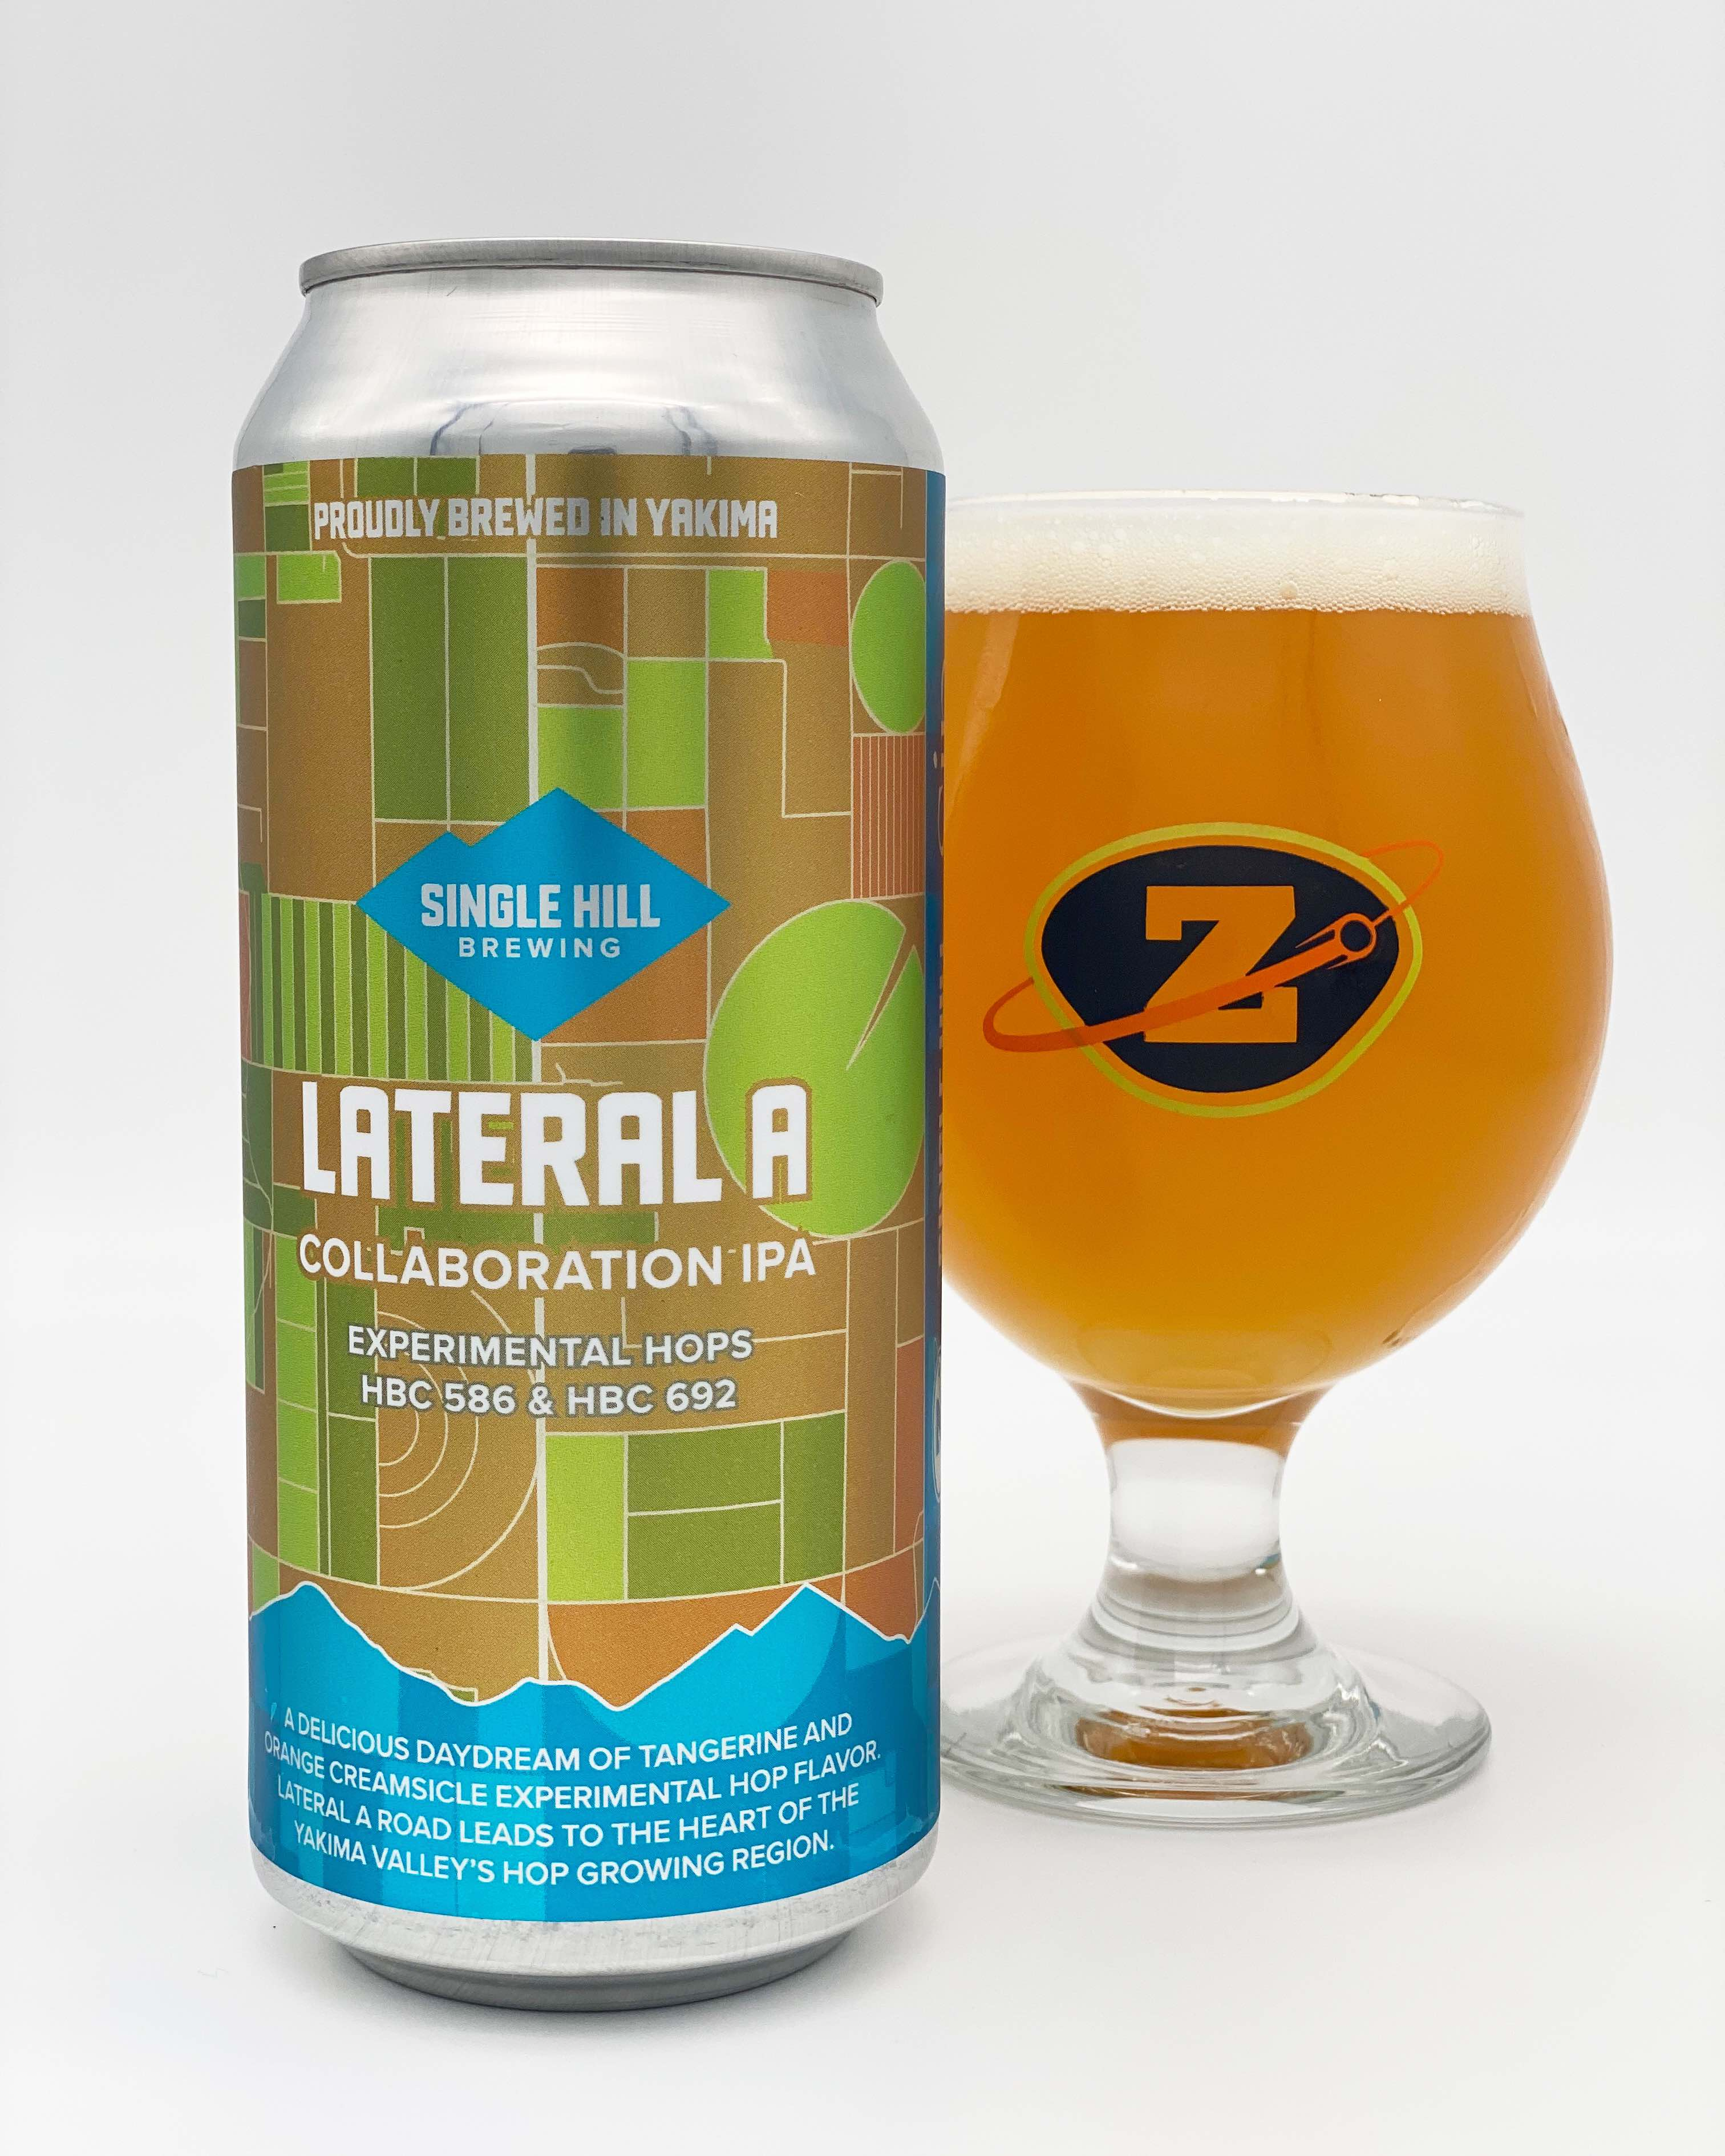 Single Hill Brewing, Zeeks Pzza and SIP Magazine collaborate on Lateral A IPA.